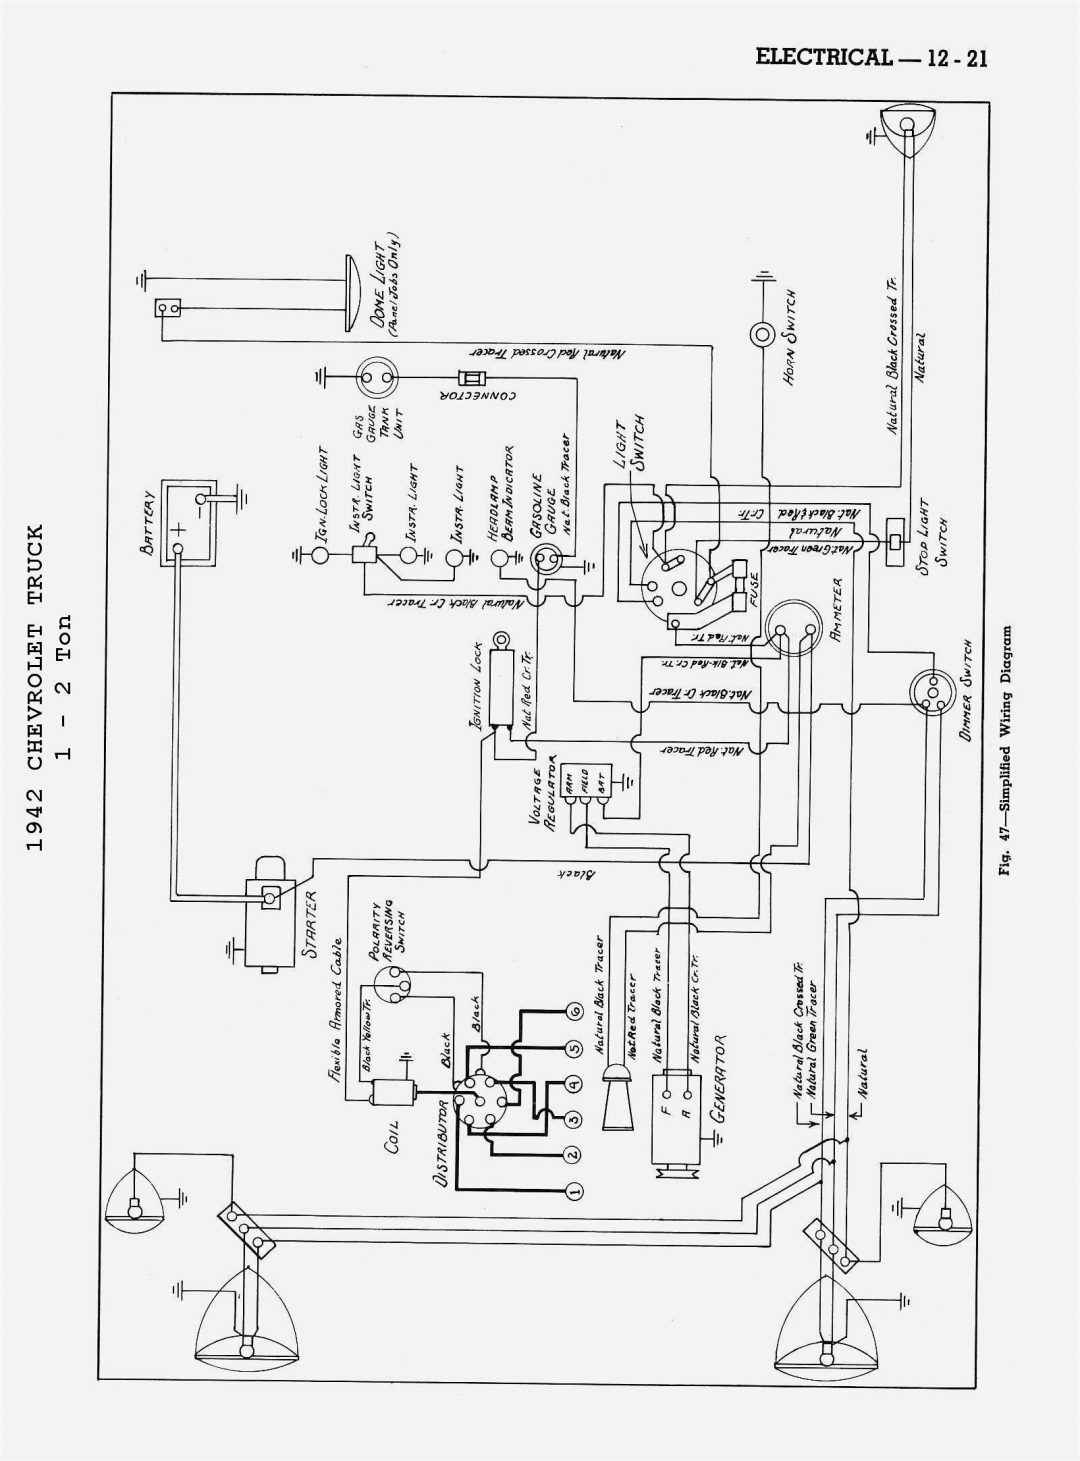 fender hot rod telecaster wiring diagram 2001 chevy cavalier stereo drawing at getdrawings free for personal